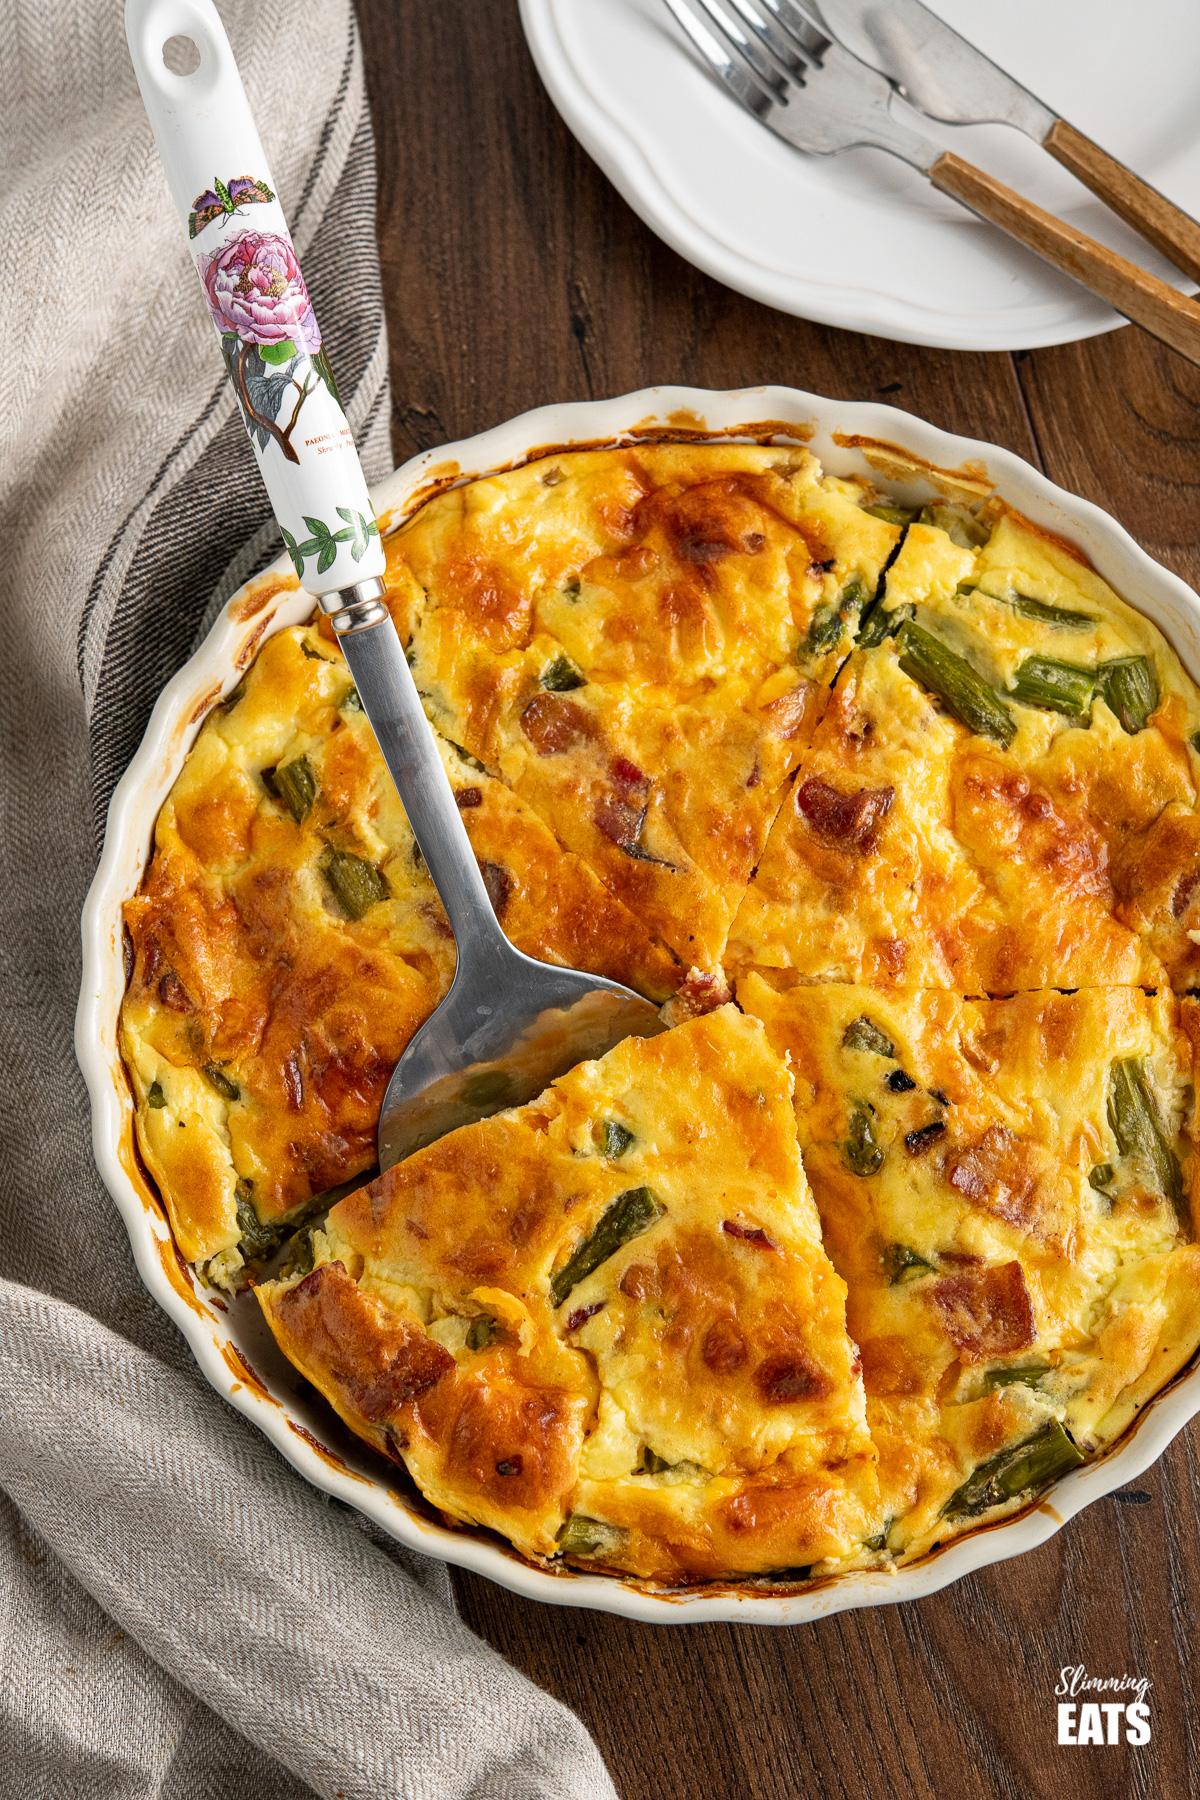 Crustless Asparagus and Bacon Quiche in flan dish with spatula on wooden board